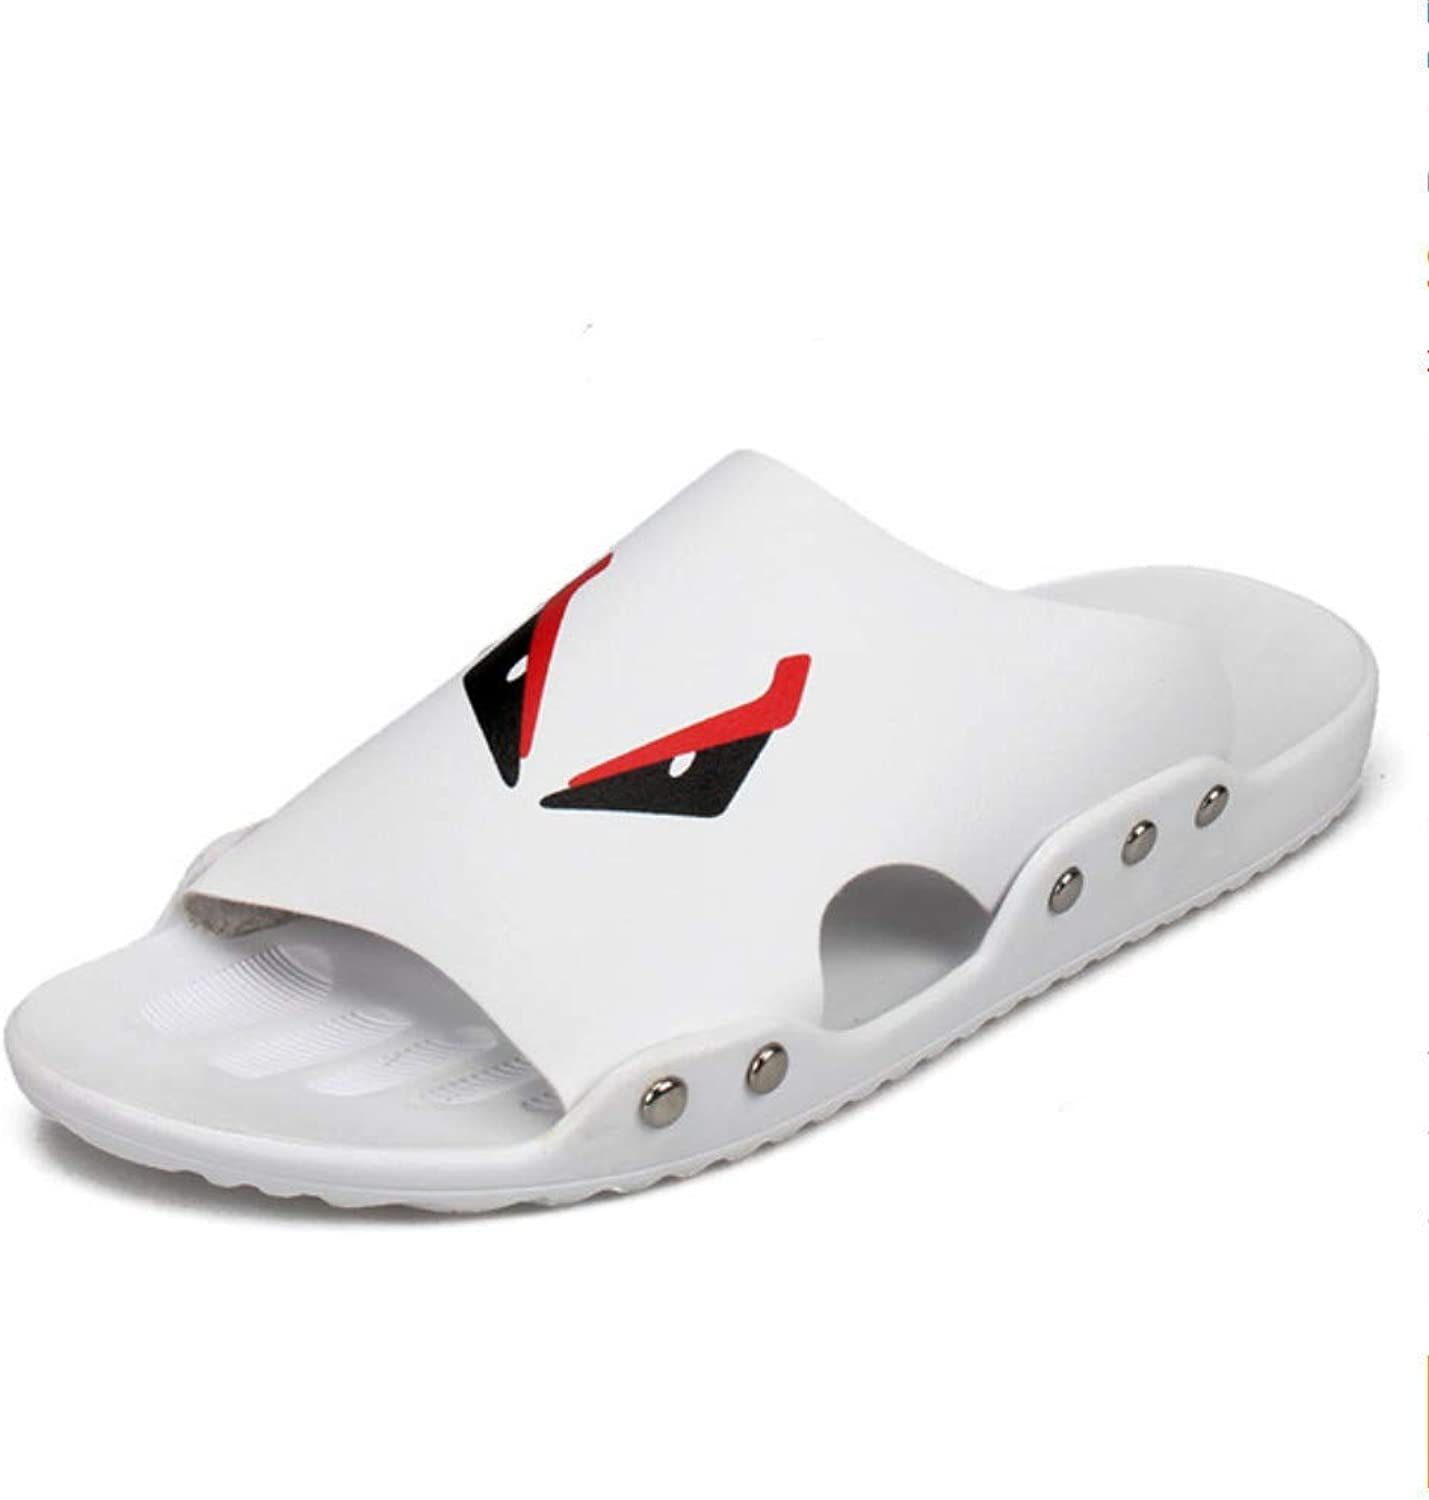 Hysxm New Men Slippers Summer Breathable Slip-On Sandals Large Size Soft Light Design Waterproof Beach Slippers Fashion Casual shoes A2